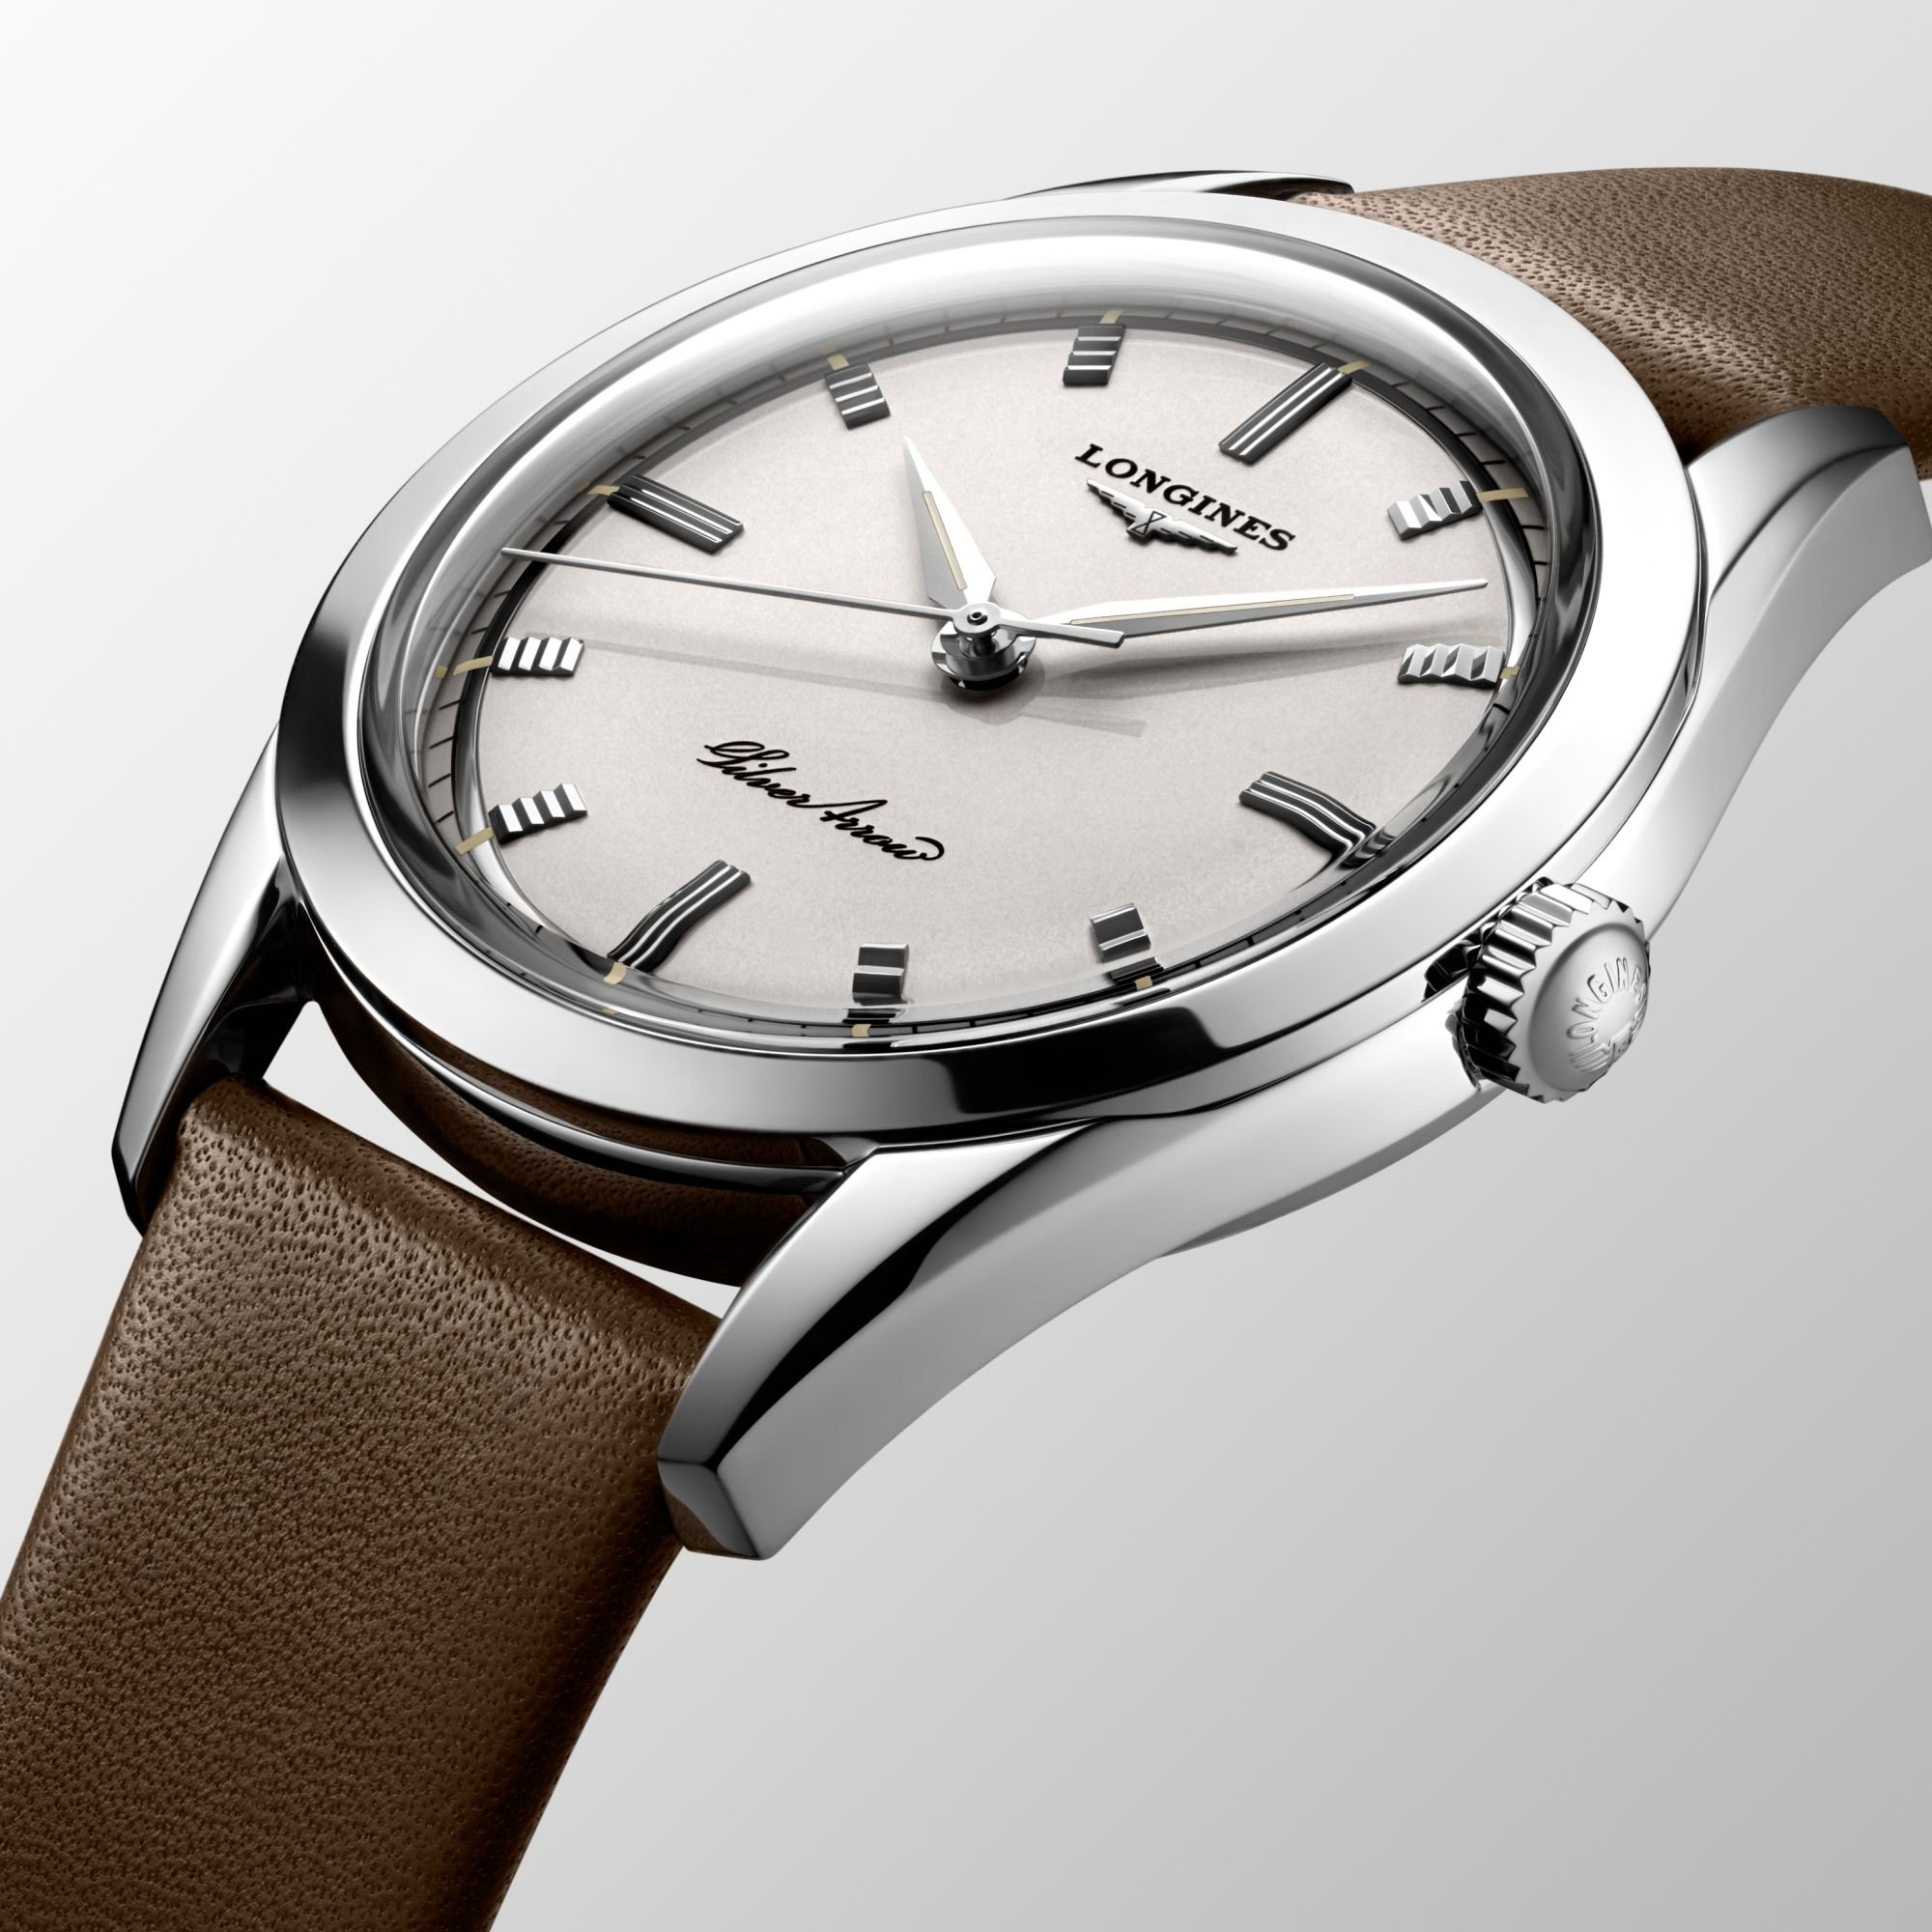 the-longines-heritage-classic-l2-834-4-72-2-detailed-view-2000x2000-1.jpeg